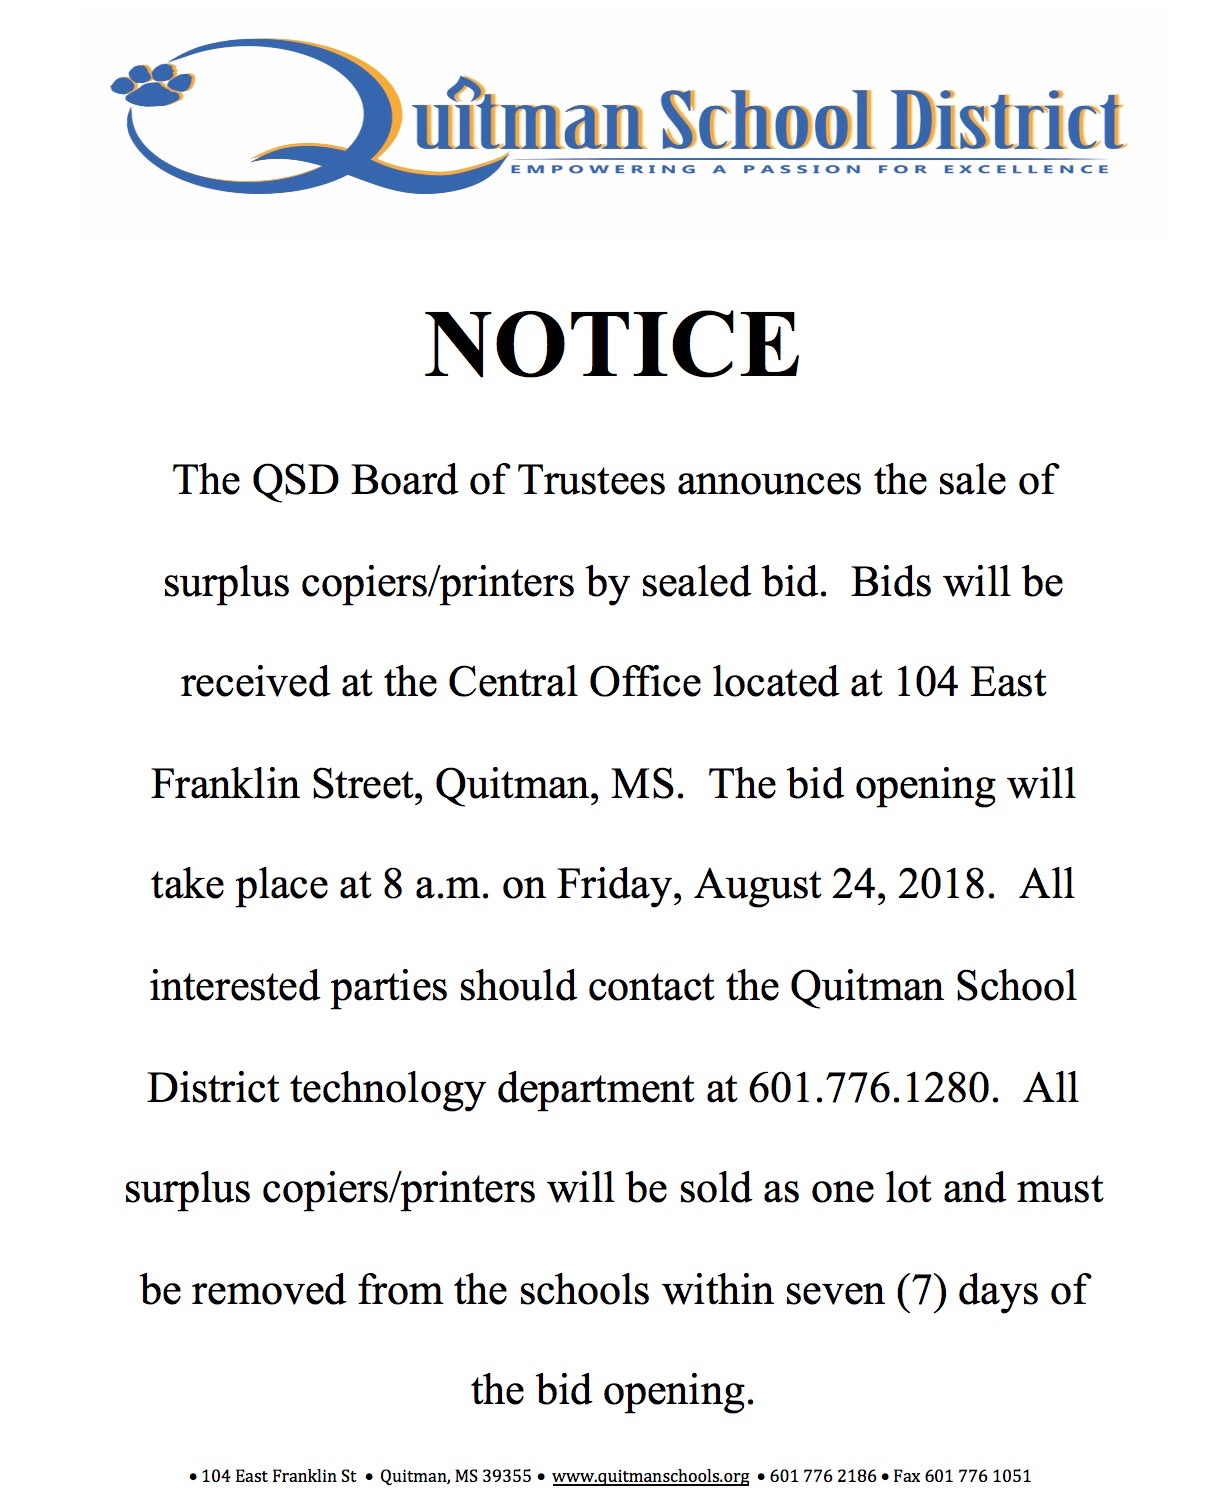 Notice from the QSD Board of Trustees on the sale of school property.